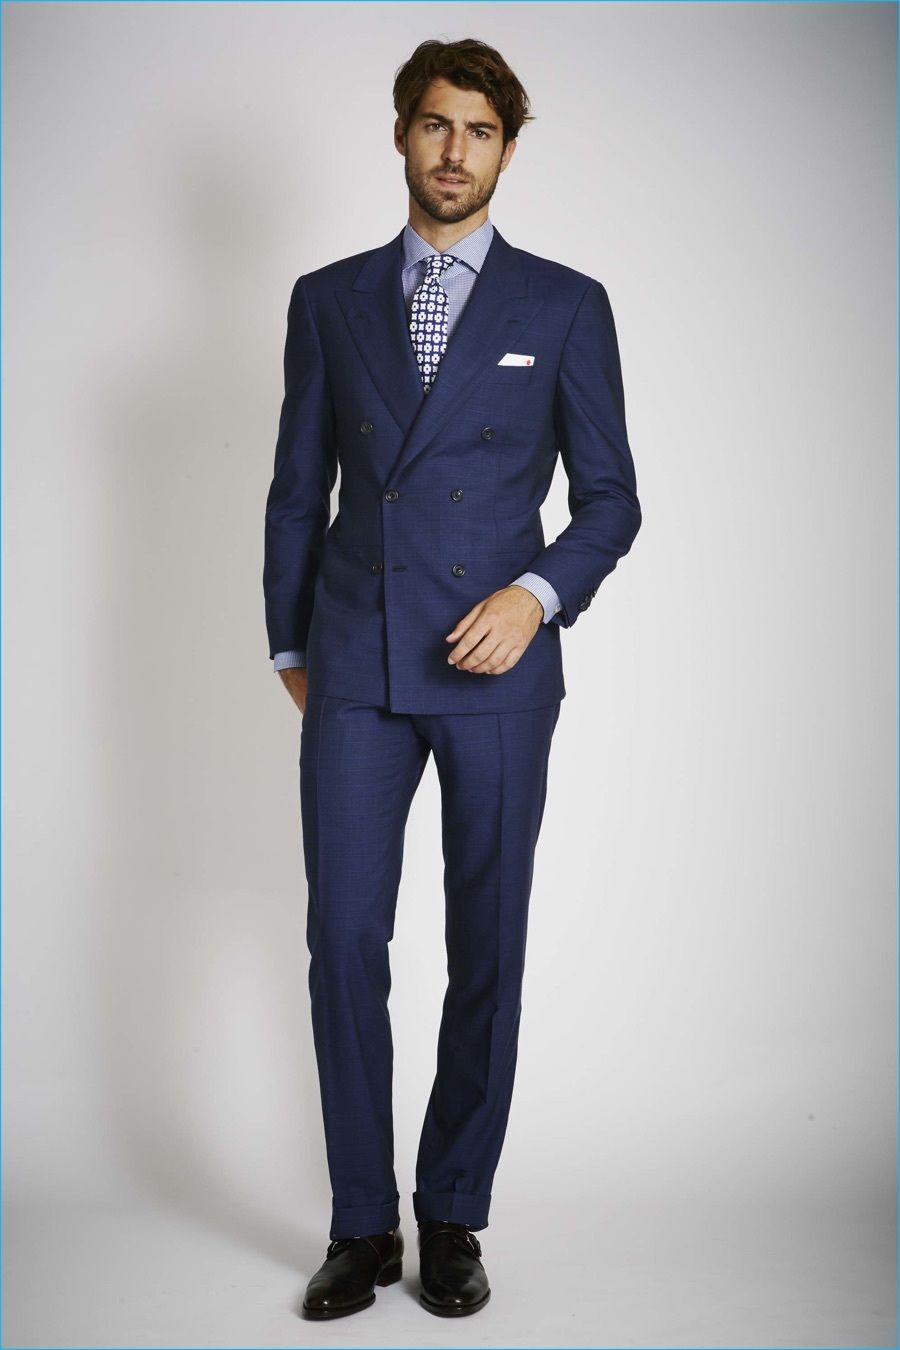 Men's Navy Suit, Light Blue Dress Shirt, Black Leather Derby Shoes ...